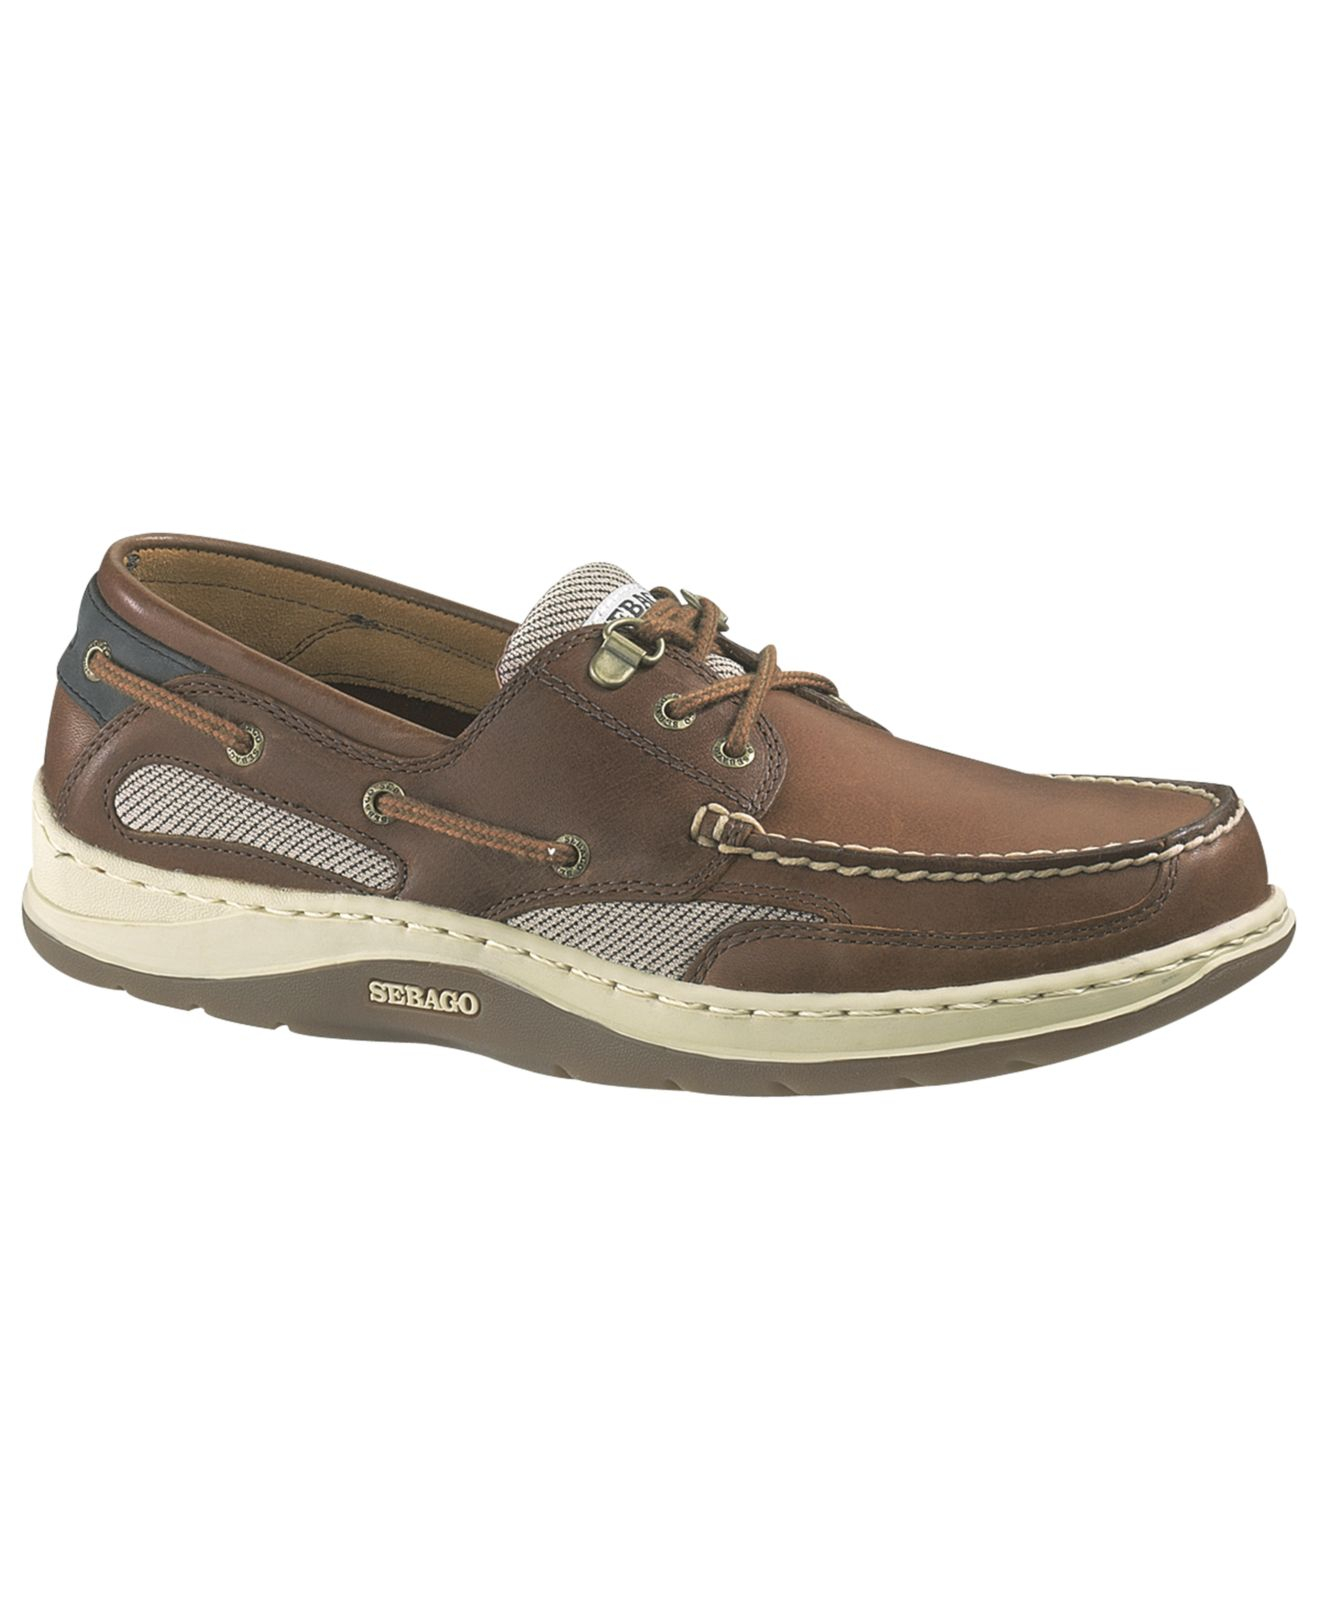 Sebago Boat Shoes For Sale